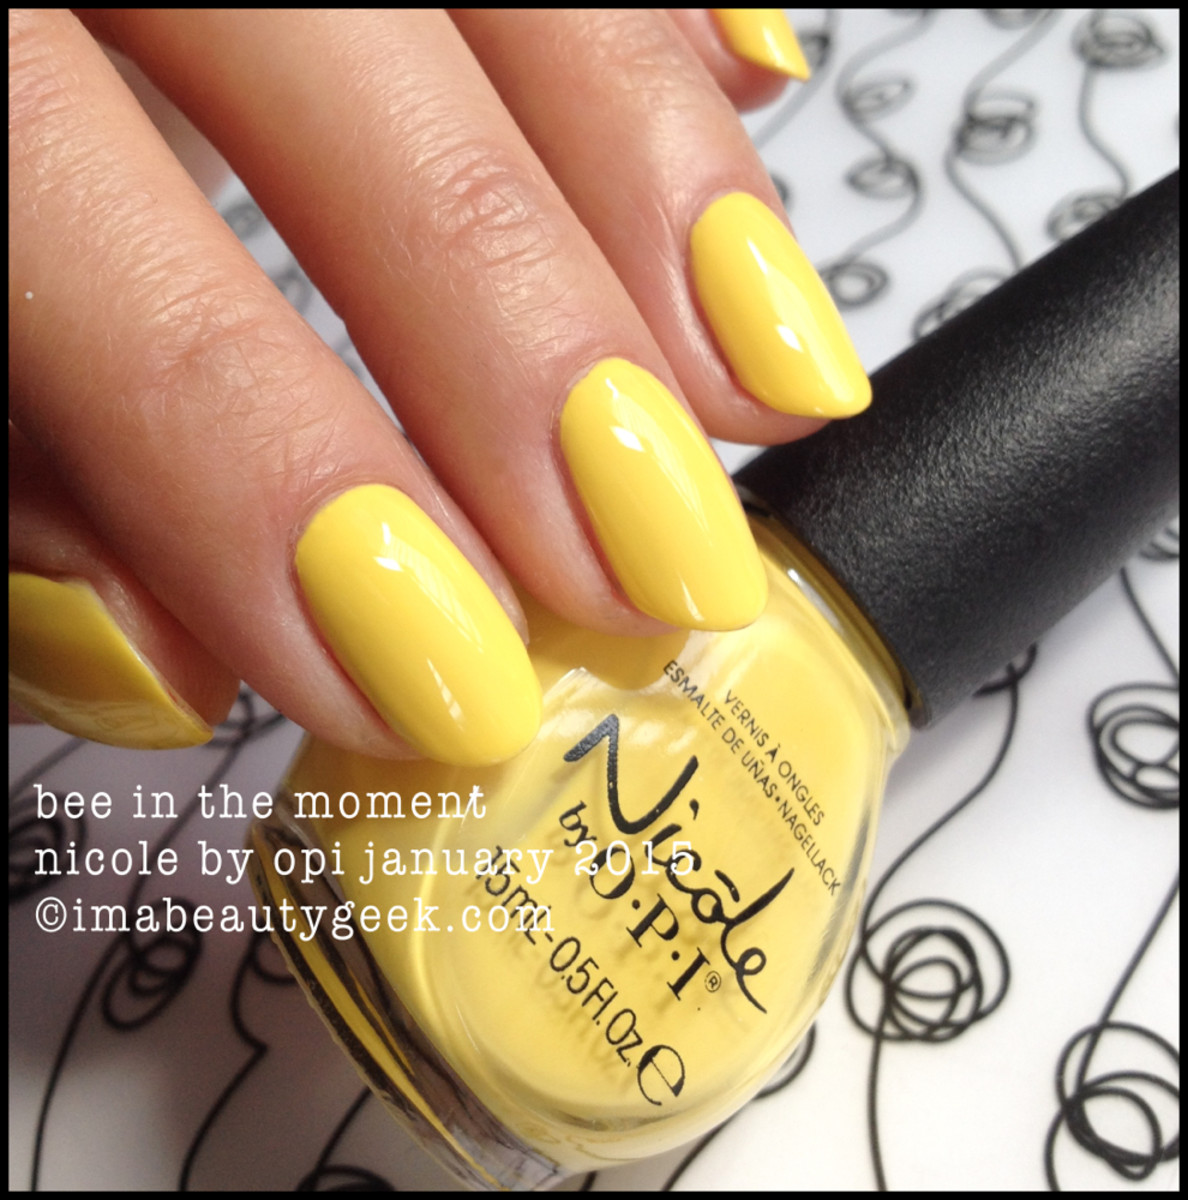 Nicole by OPI Bee in the Moment